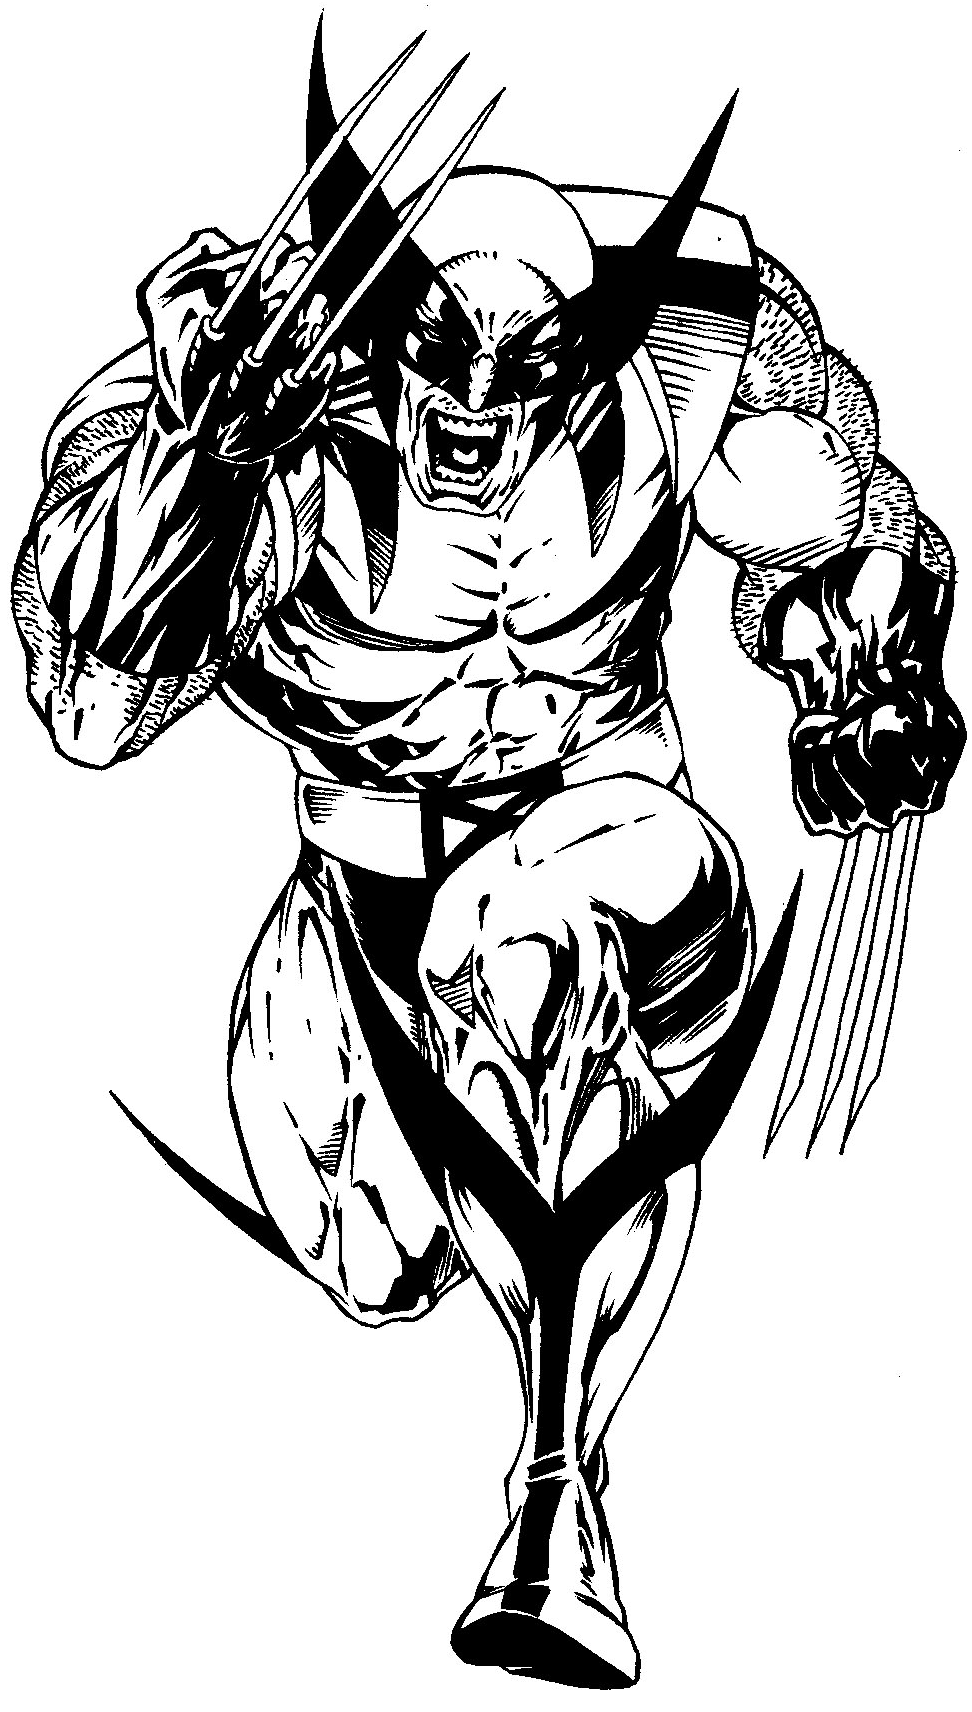 972x1712 How To Draw Wolverine From Marvel's X Men Superhero Team Drawing